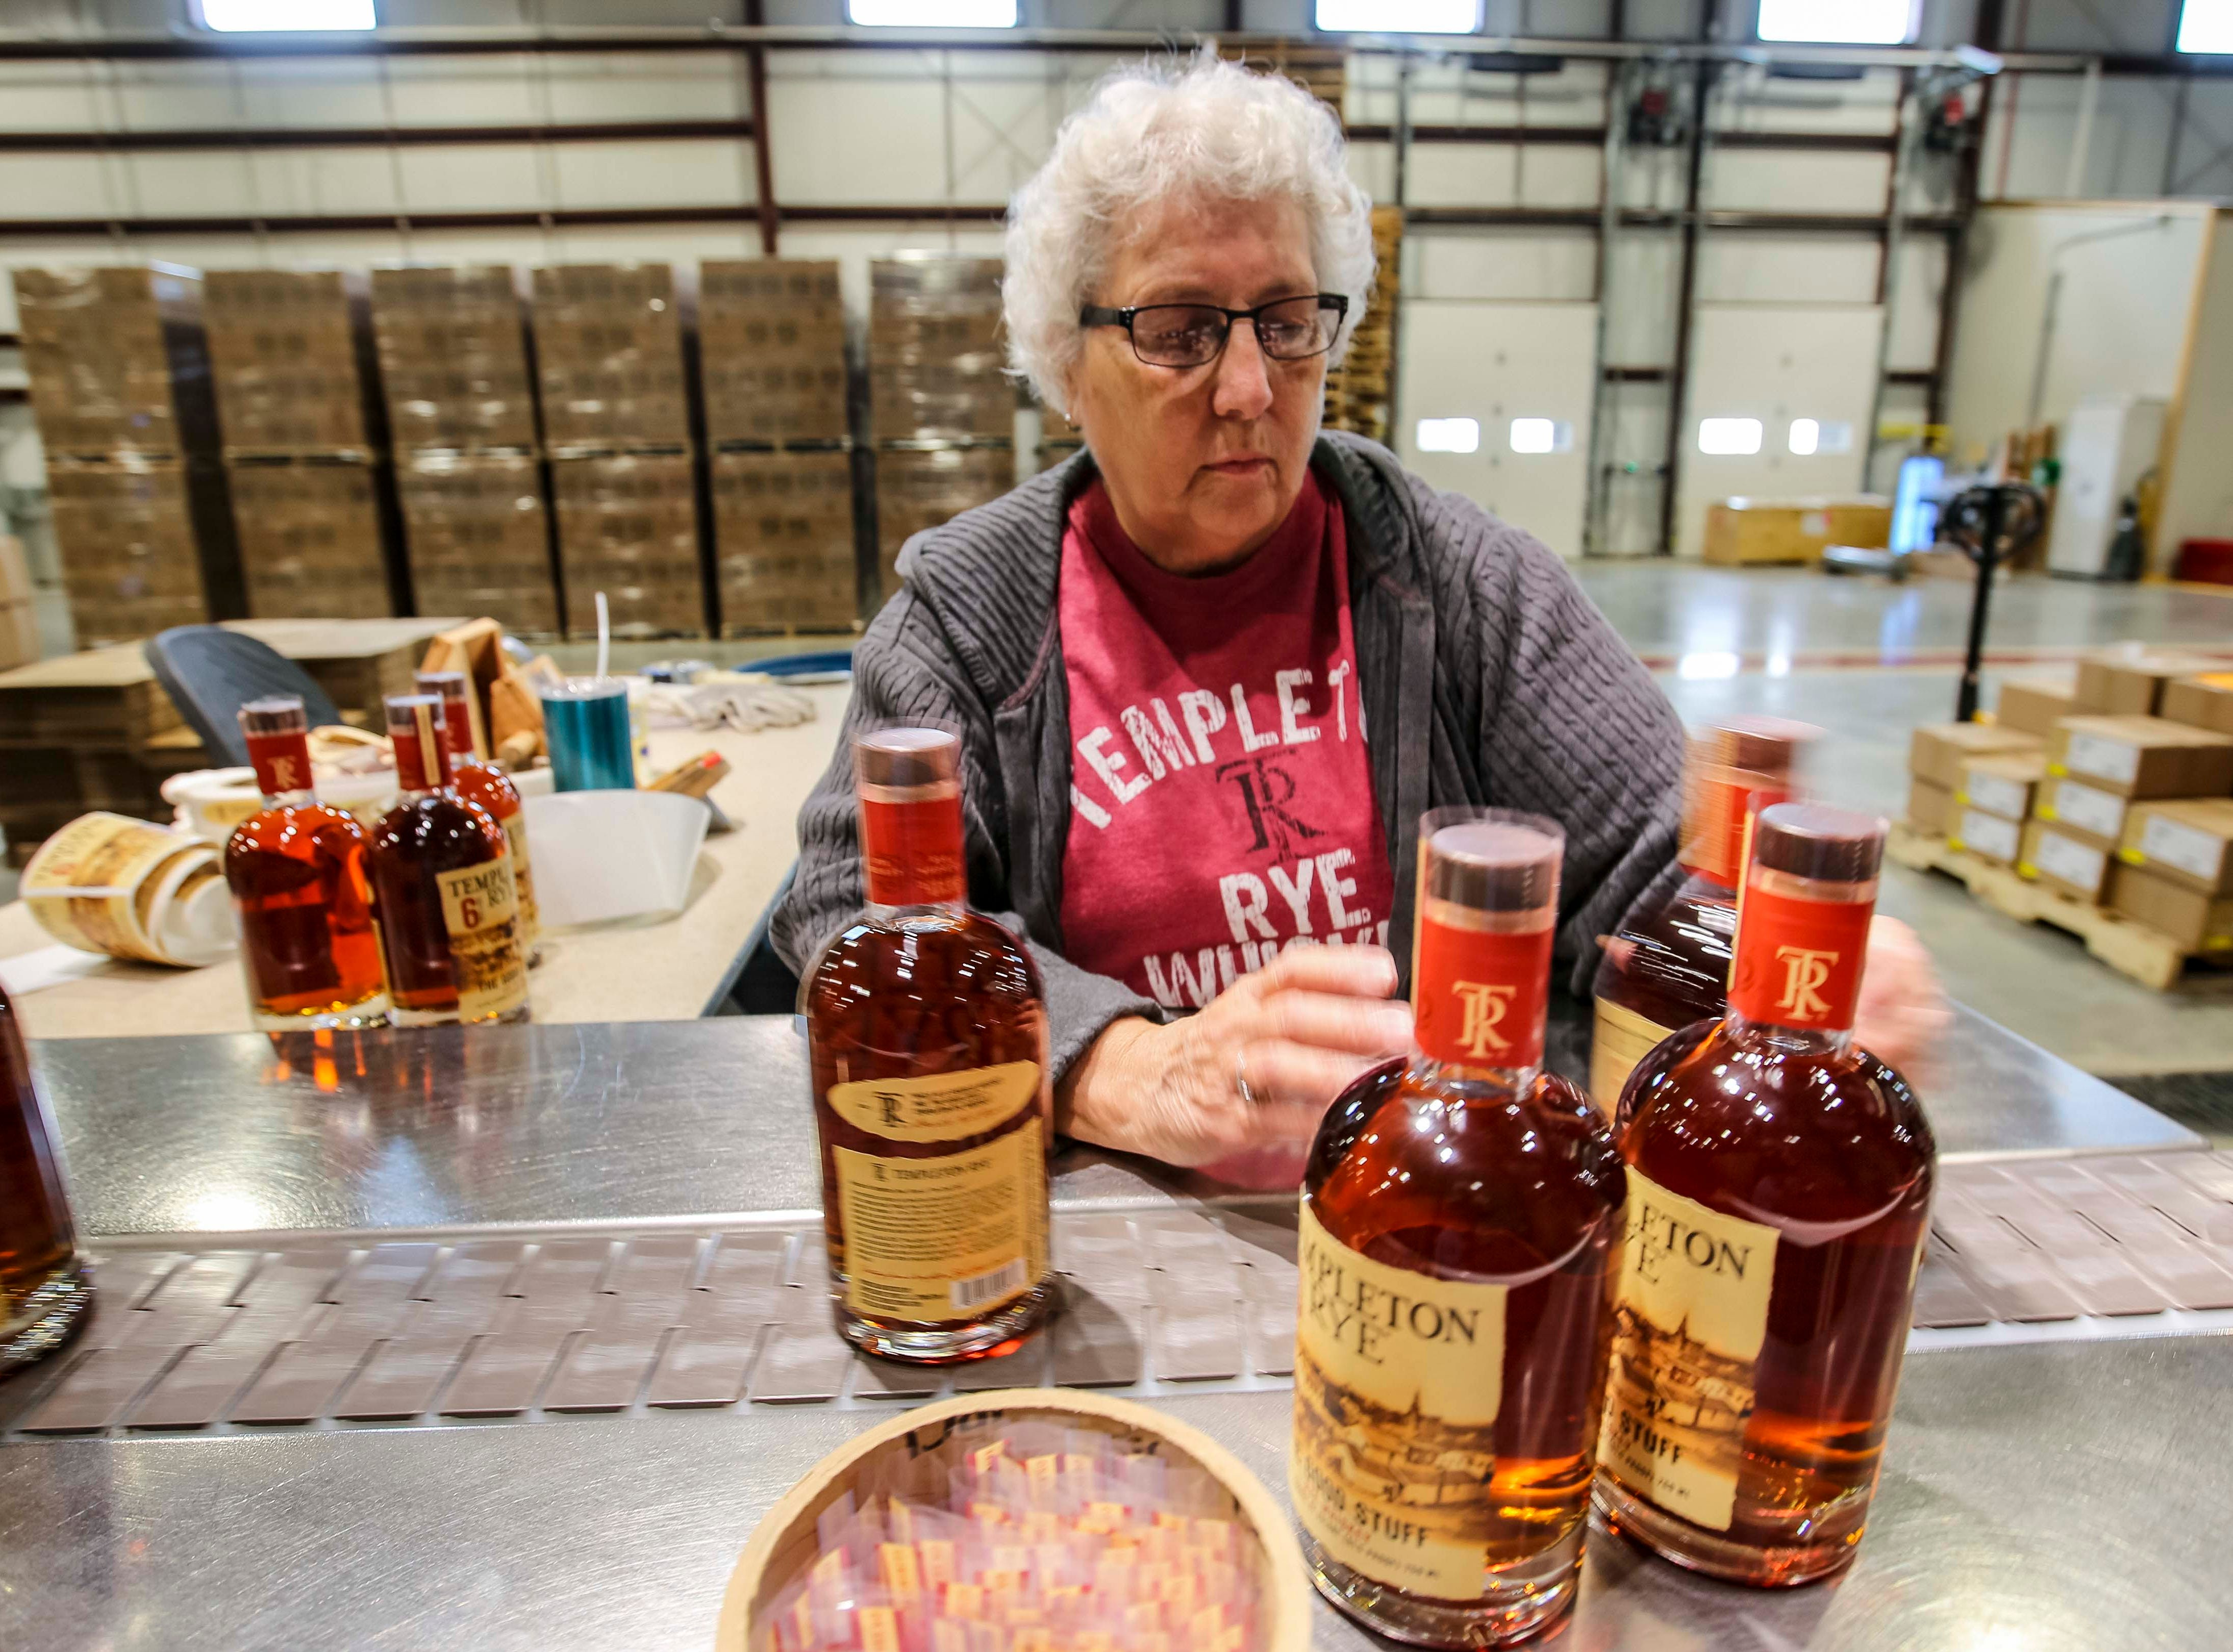 Diane Gute adjusts labels on bottles of Templeton Rye in their new $35 million distillery in Templeton, Iowa, shown here Monday, Aug. 6, 2018, featuring a museum and visitor's center.